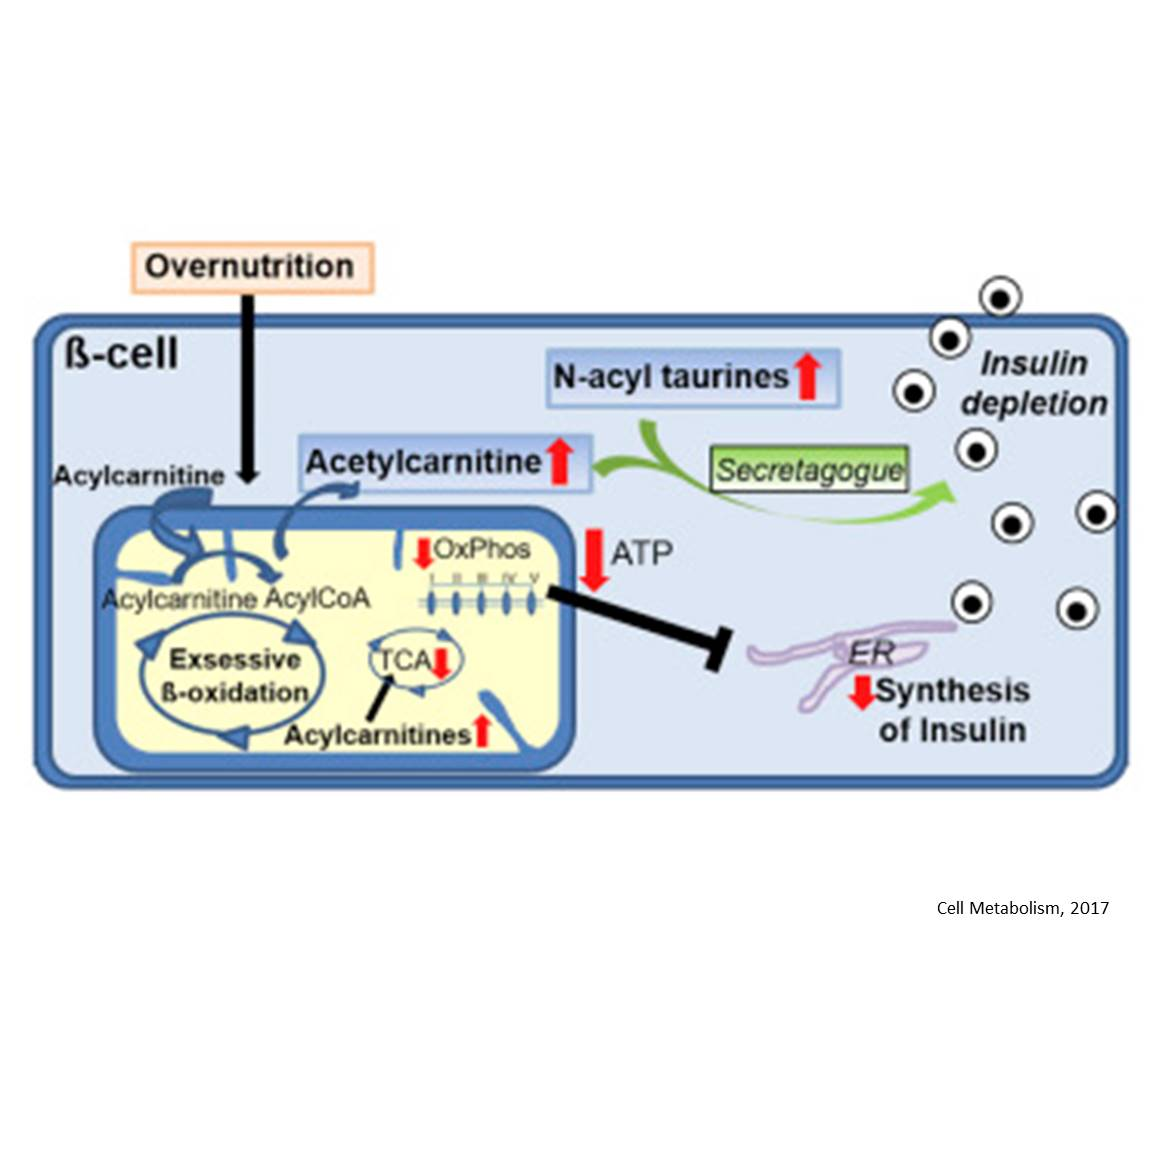 Mechanism of β cell dysfunction in type 2 diabetes (T2D)